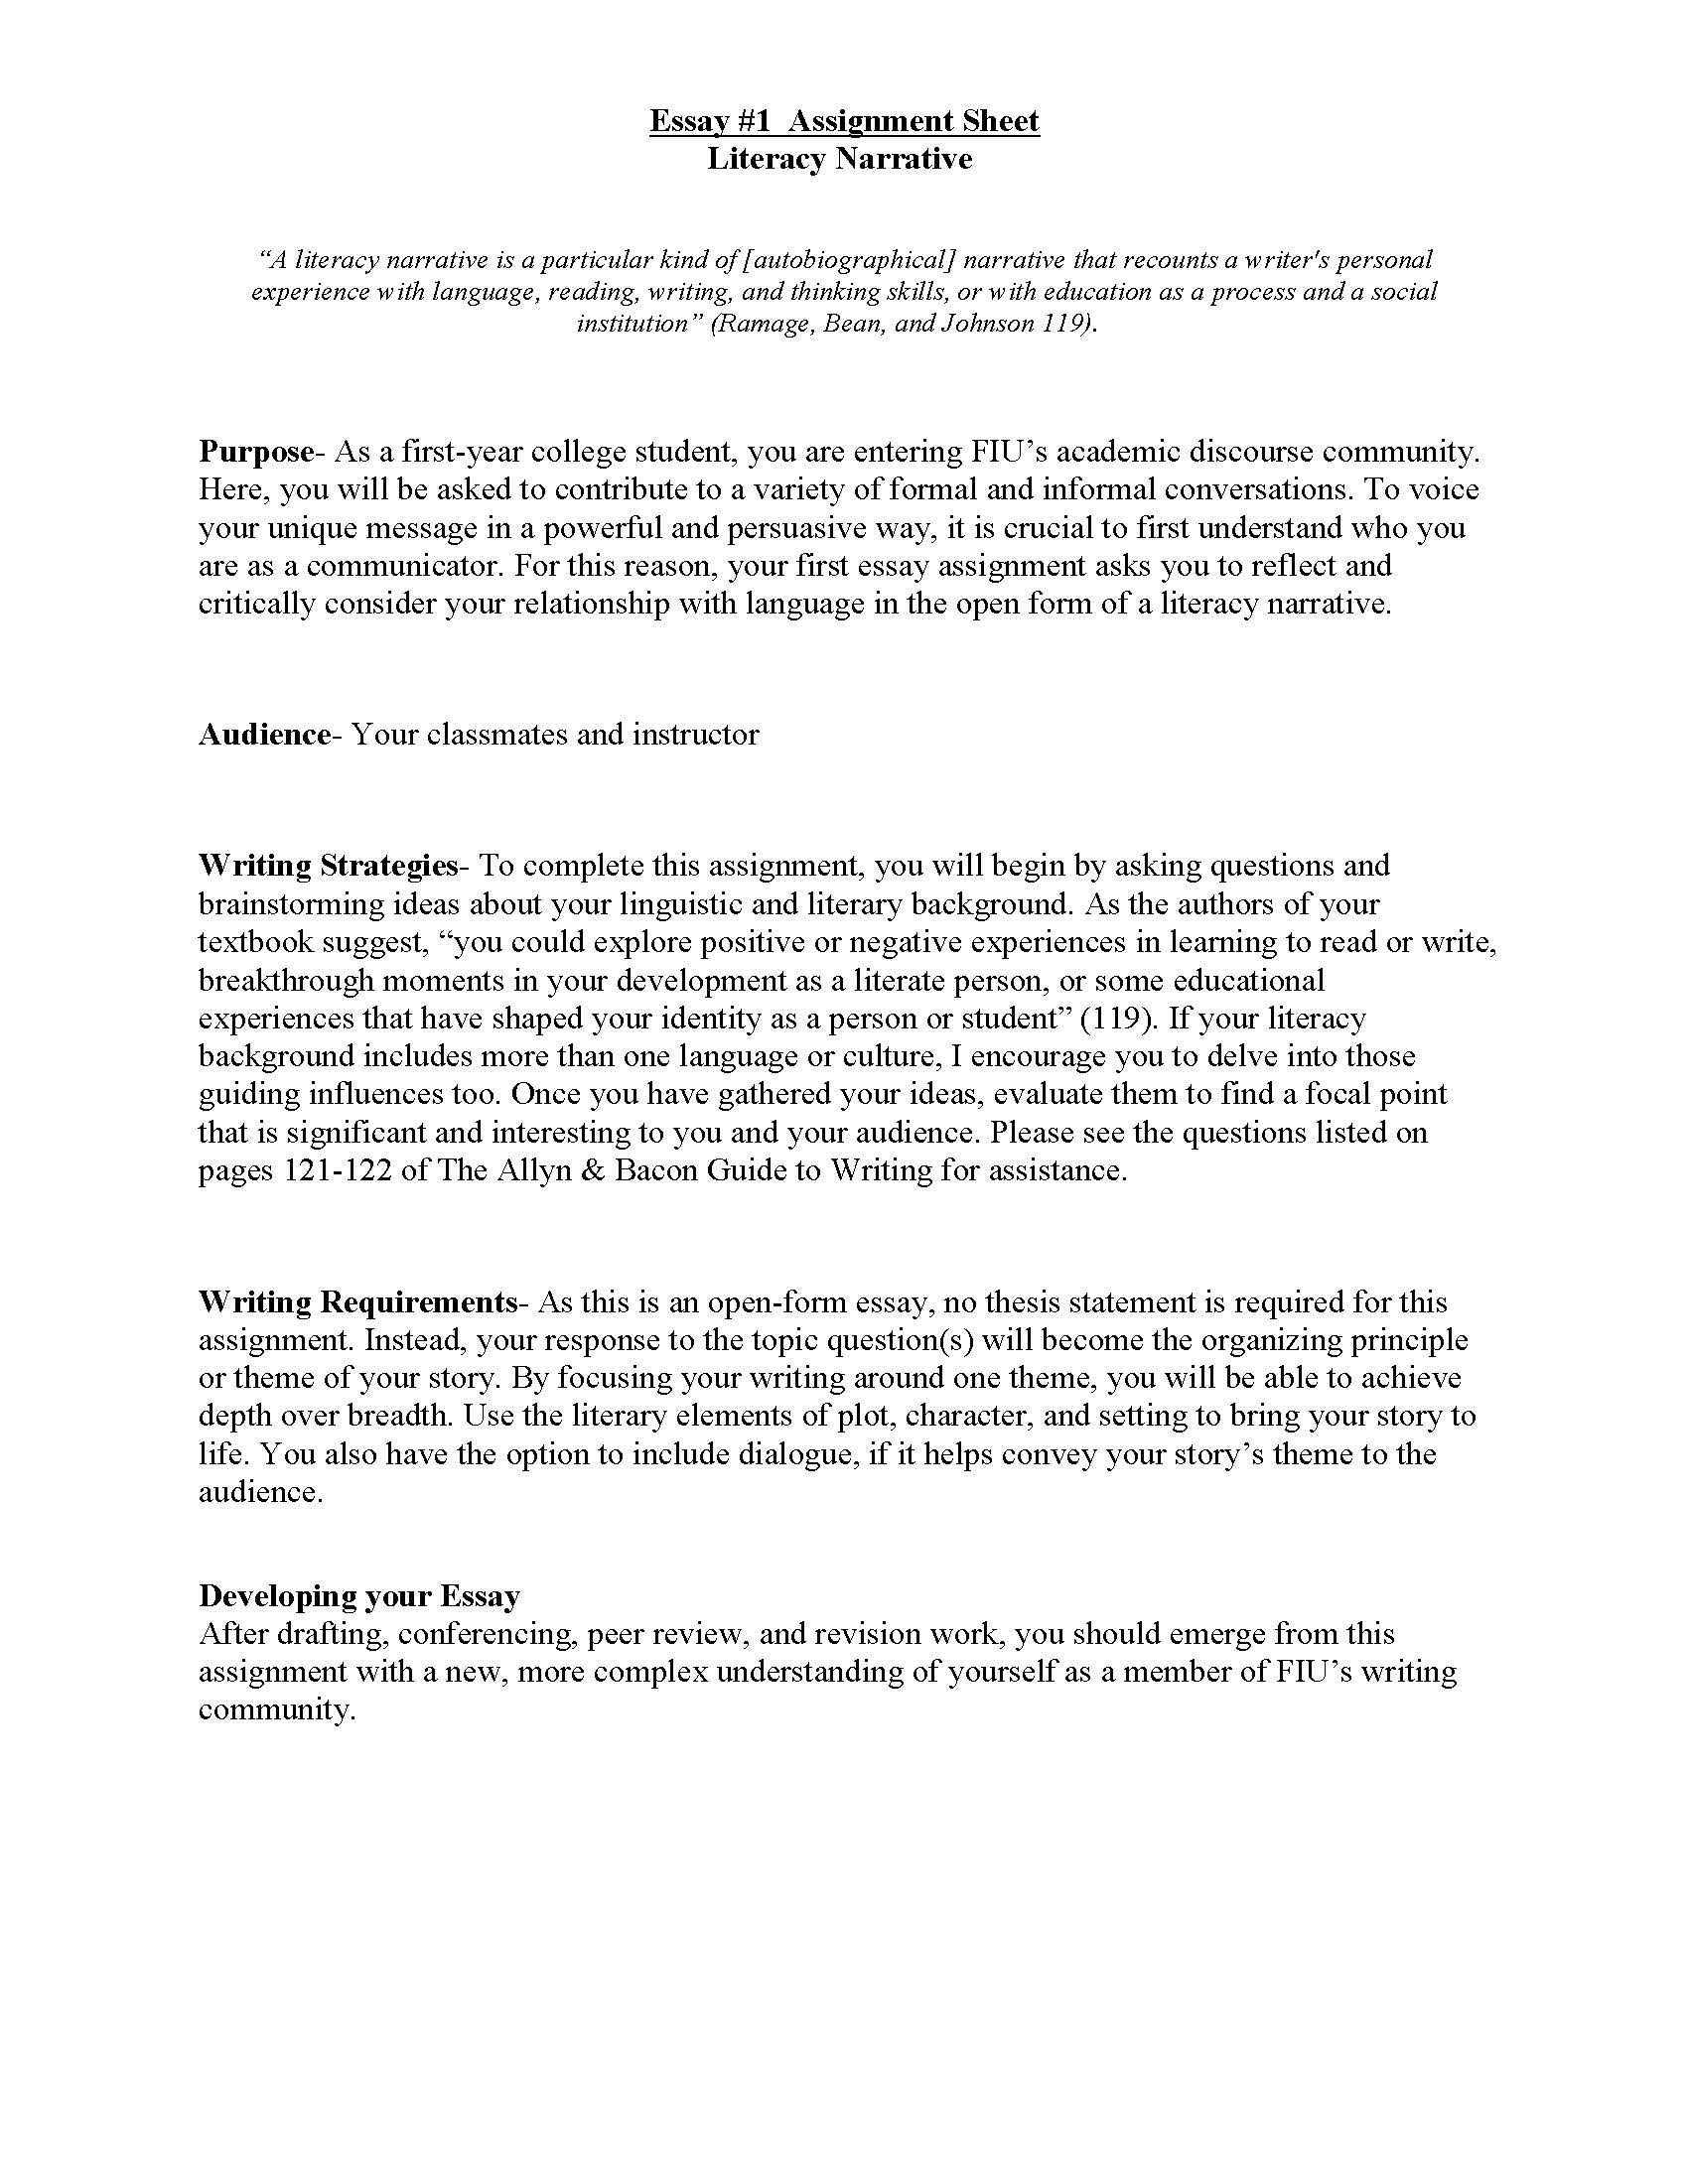 020 Narrative Essay Sample Example Literacy Unit Assignment Spring 2012 Page 1 Dreaded Spm 2011 About Love Interesting Samples Full